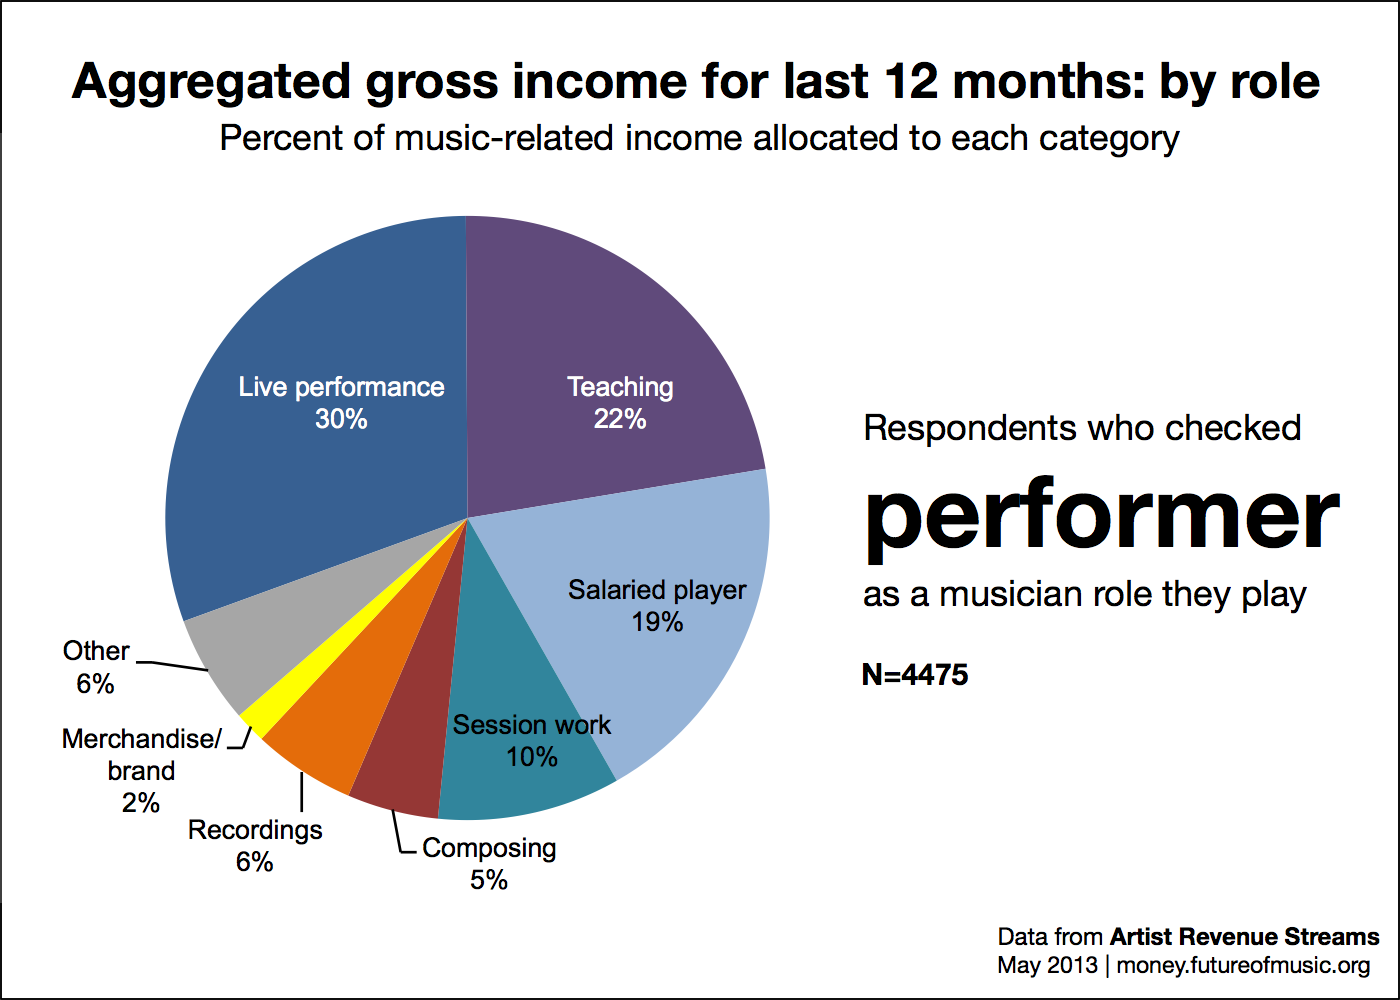 Revenue allocation for role performer